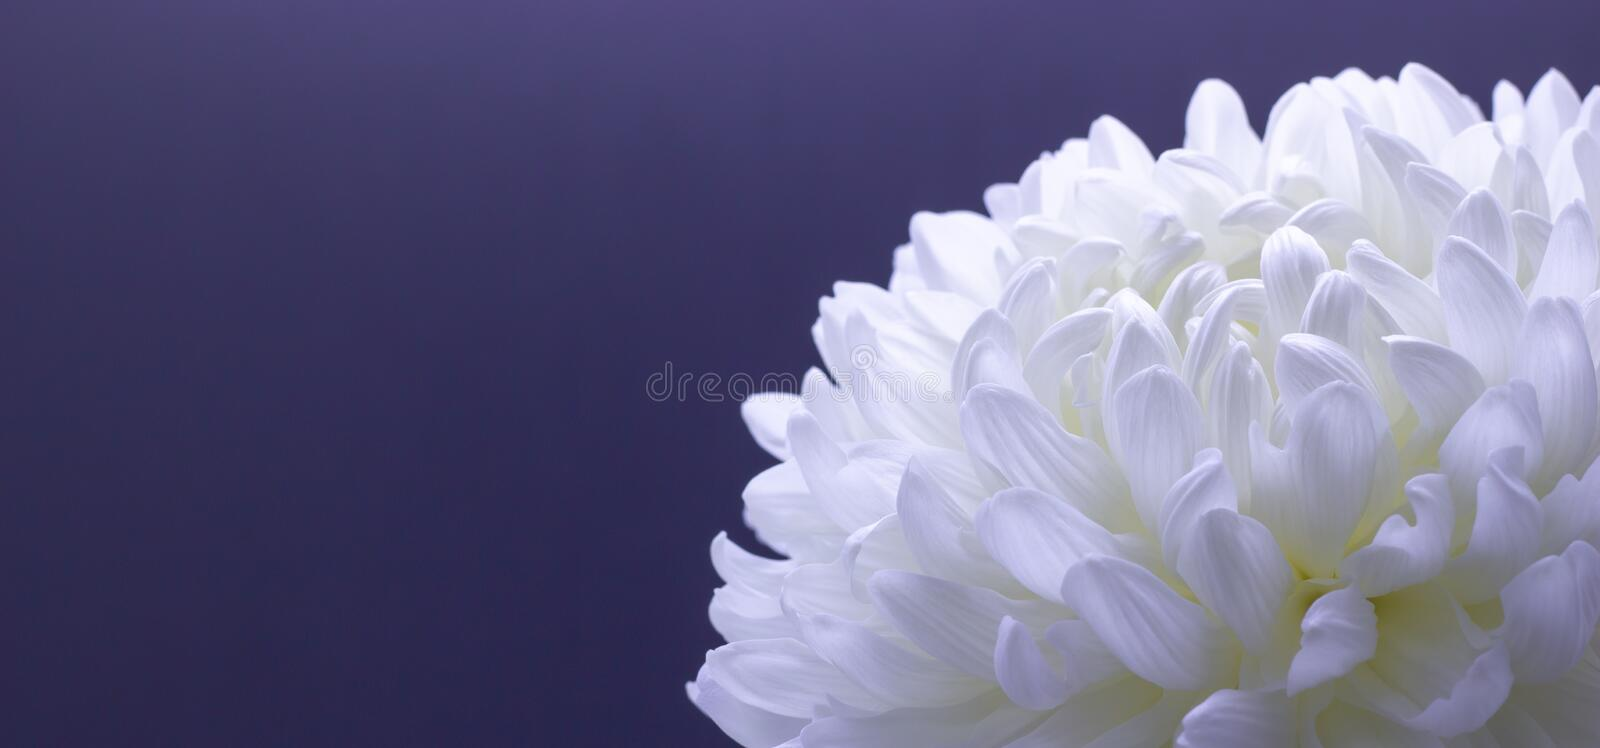 Flowers of delicate white chrysanthemum macro photo on a dark background free space for your text stock photo